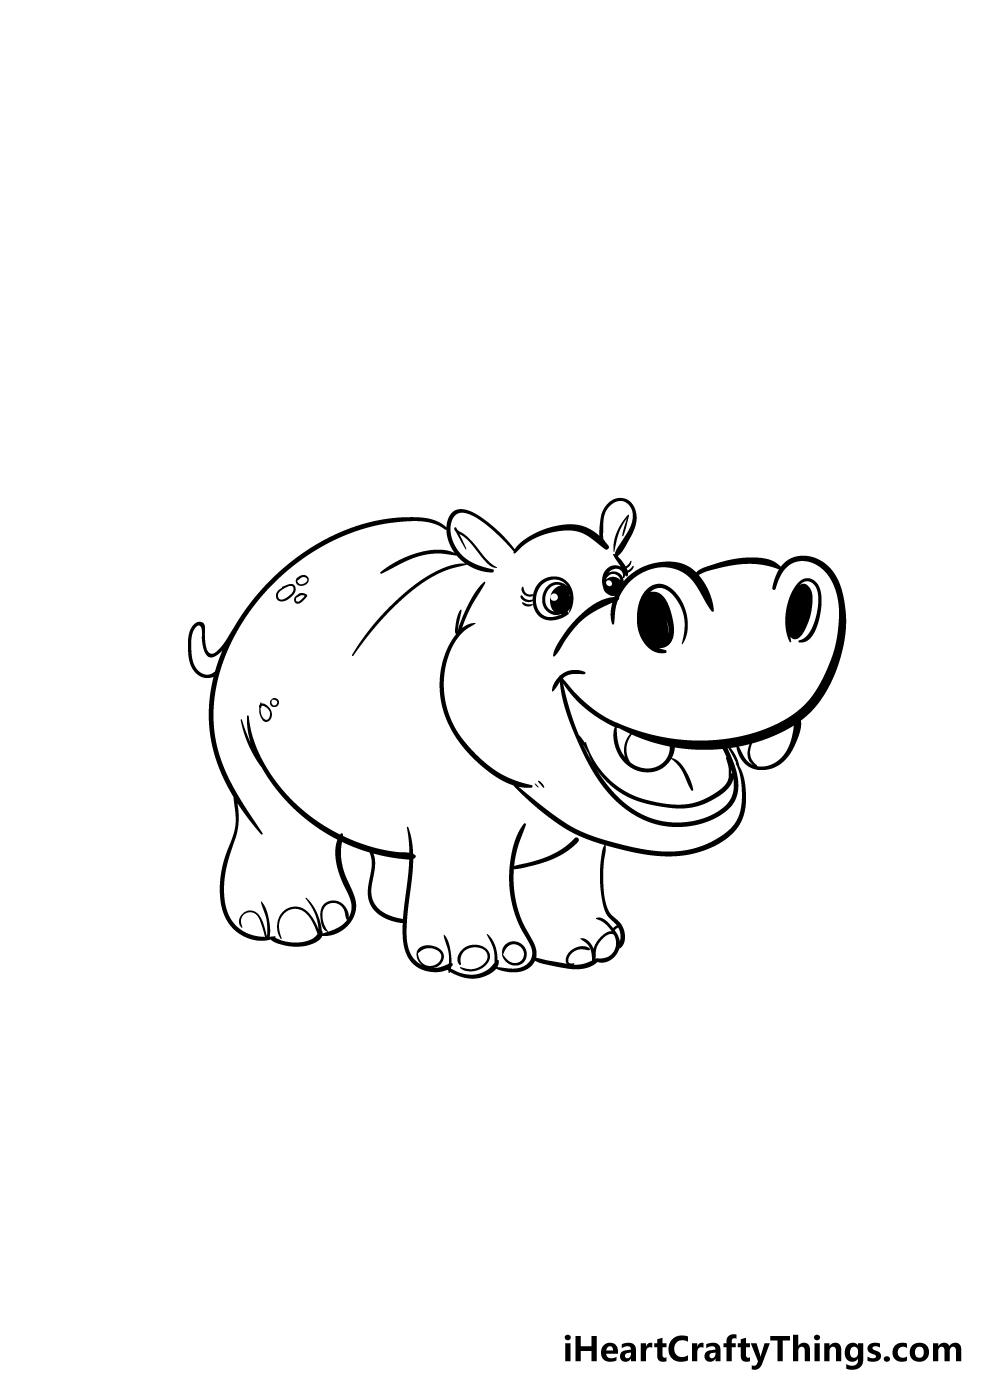 hippo drawing step 6